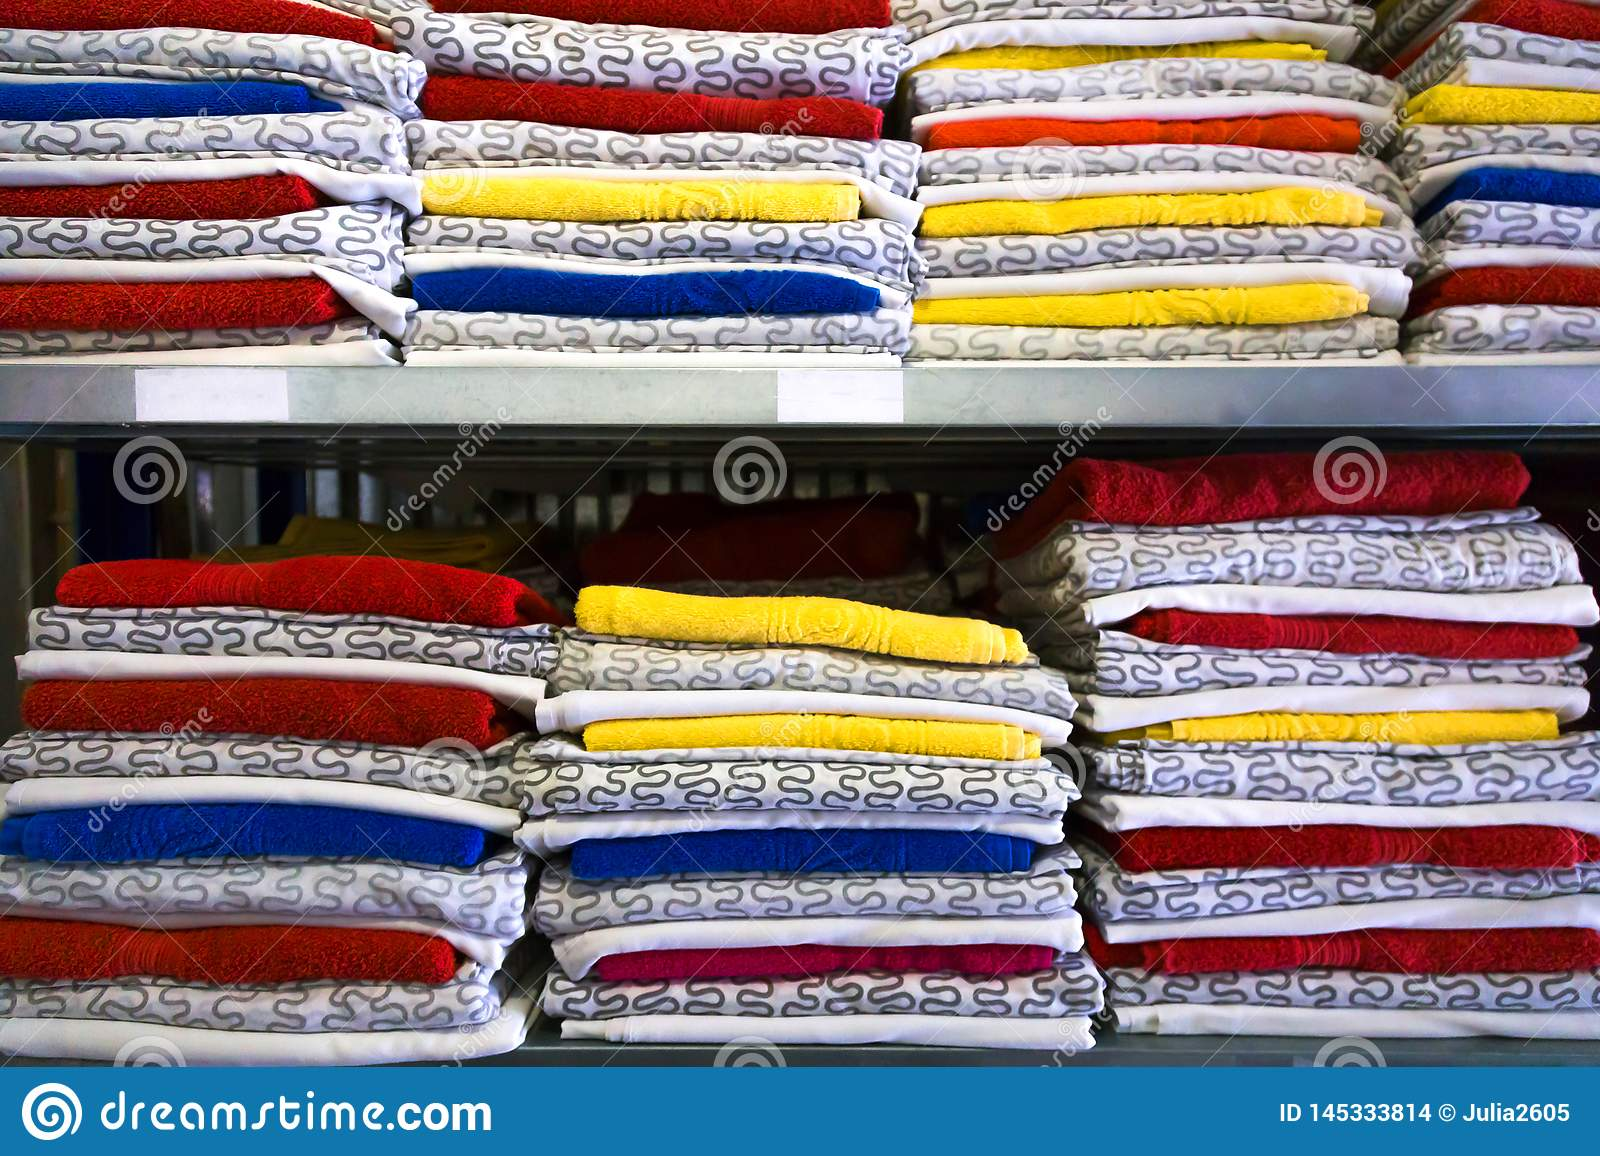 Bedding is in the closet on the shelf. Towels folded in a roll. On hangers hanging ladies` and men`s clothing.